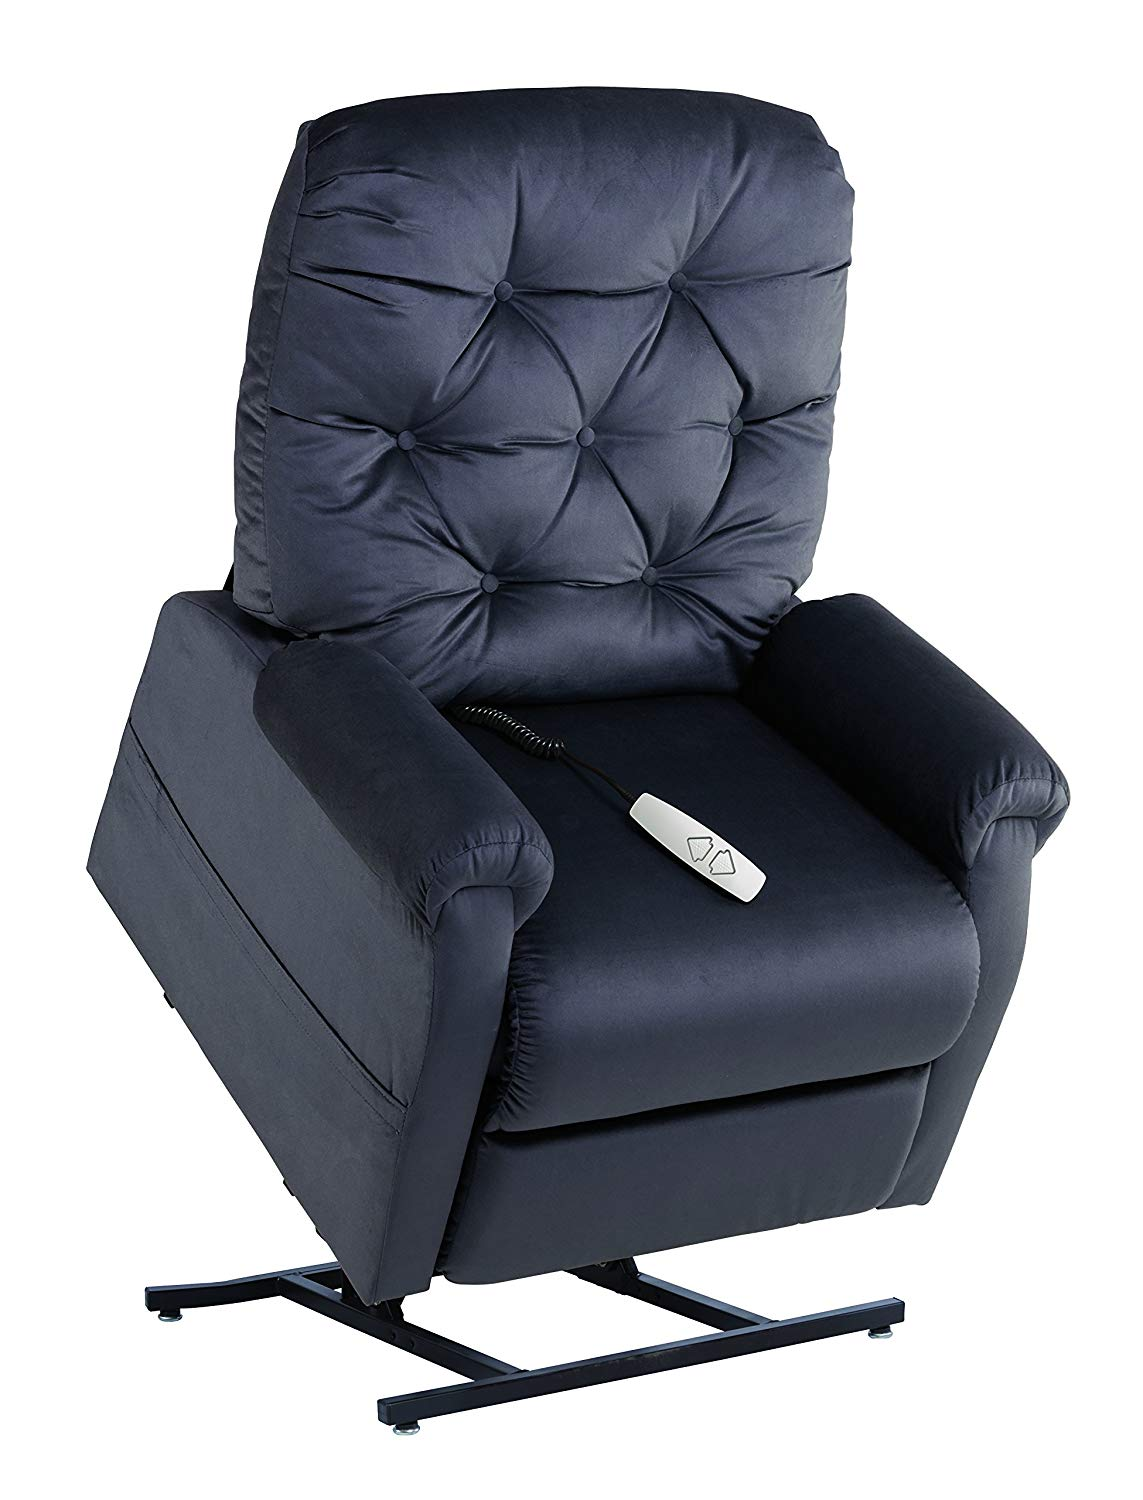 Mega Motion NM200 Alfred Power Recline with Lift Option Chair, Medium, Charcoal